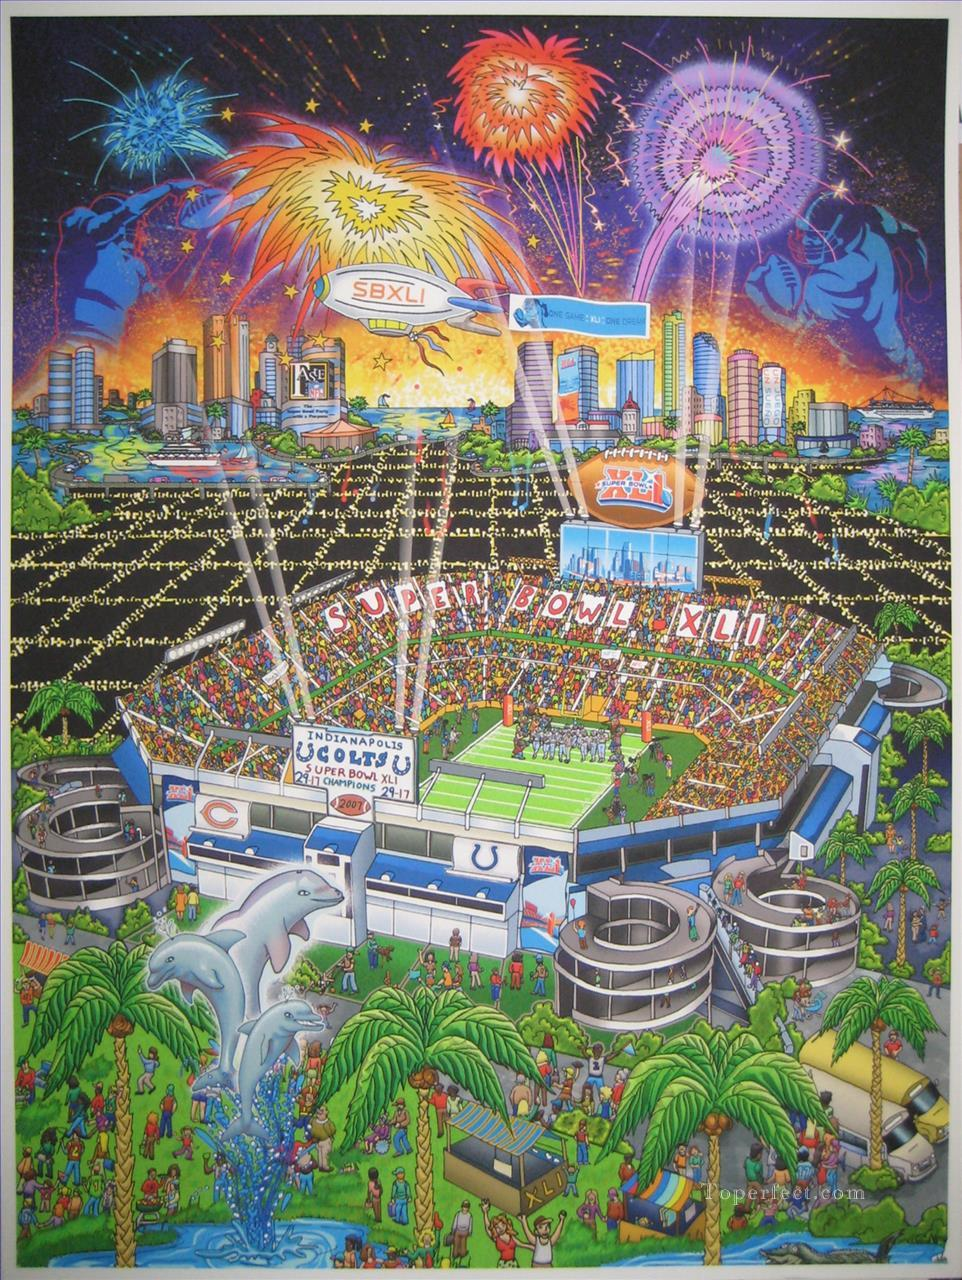 Super Bowl 41 score and logos impressionists Oil Paintings